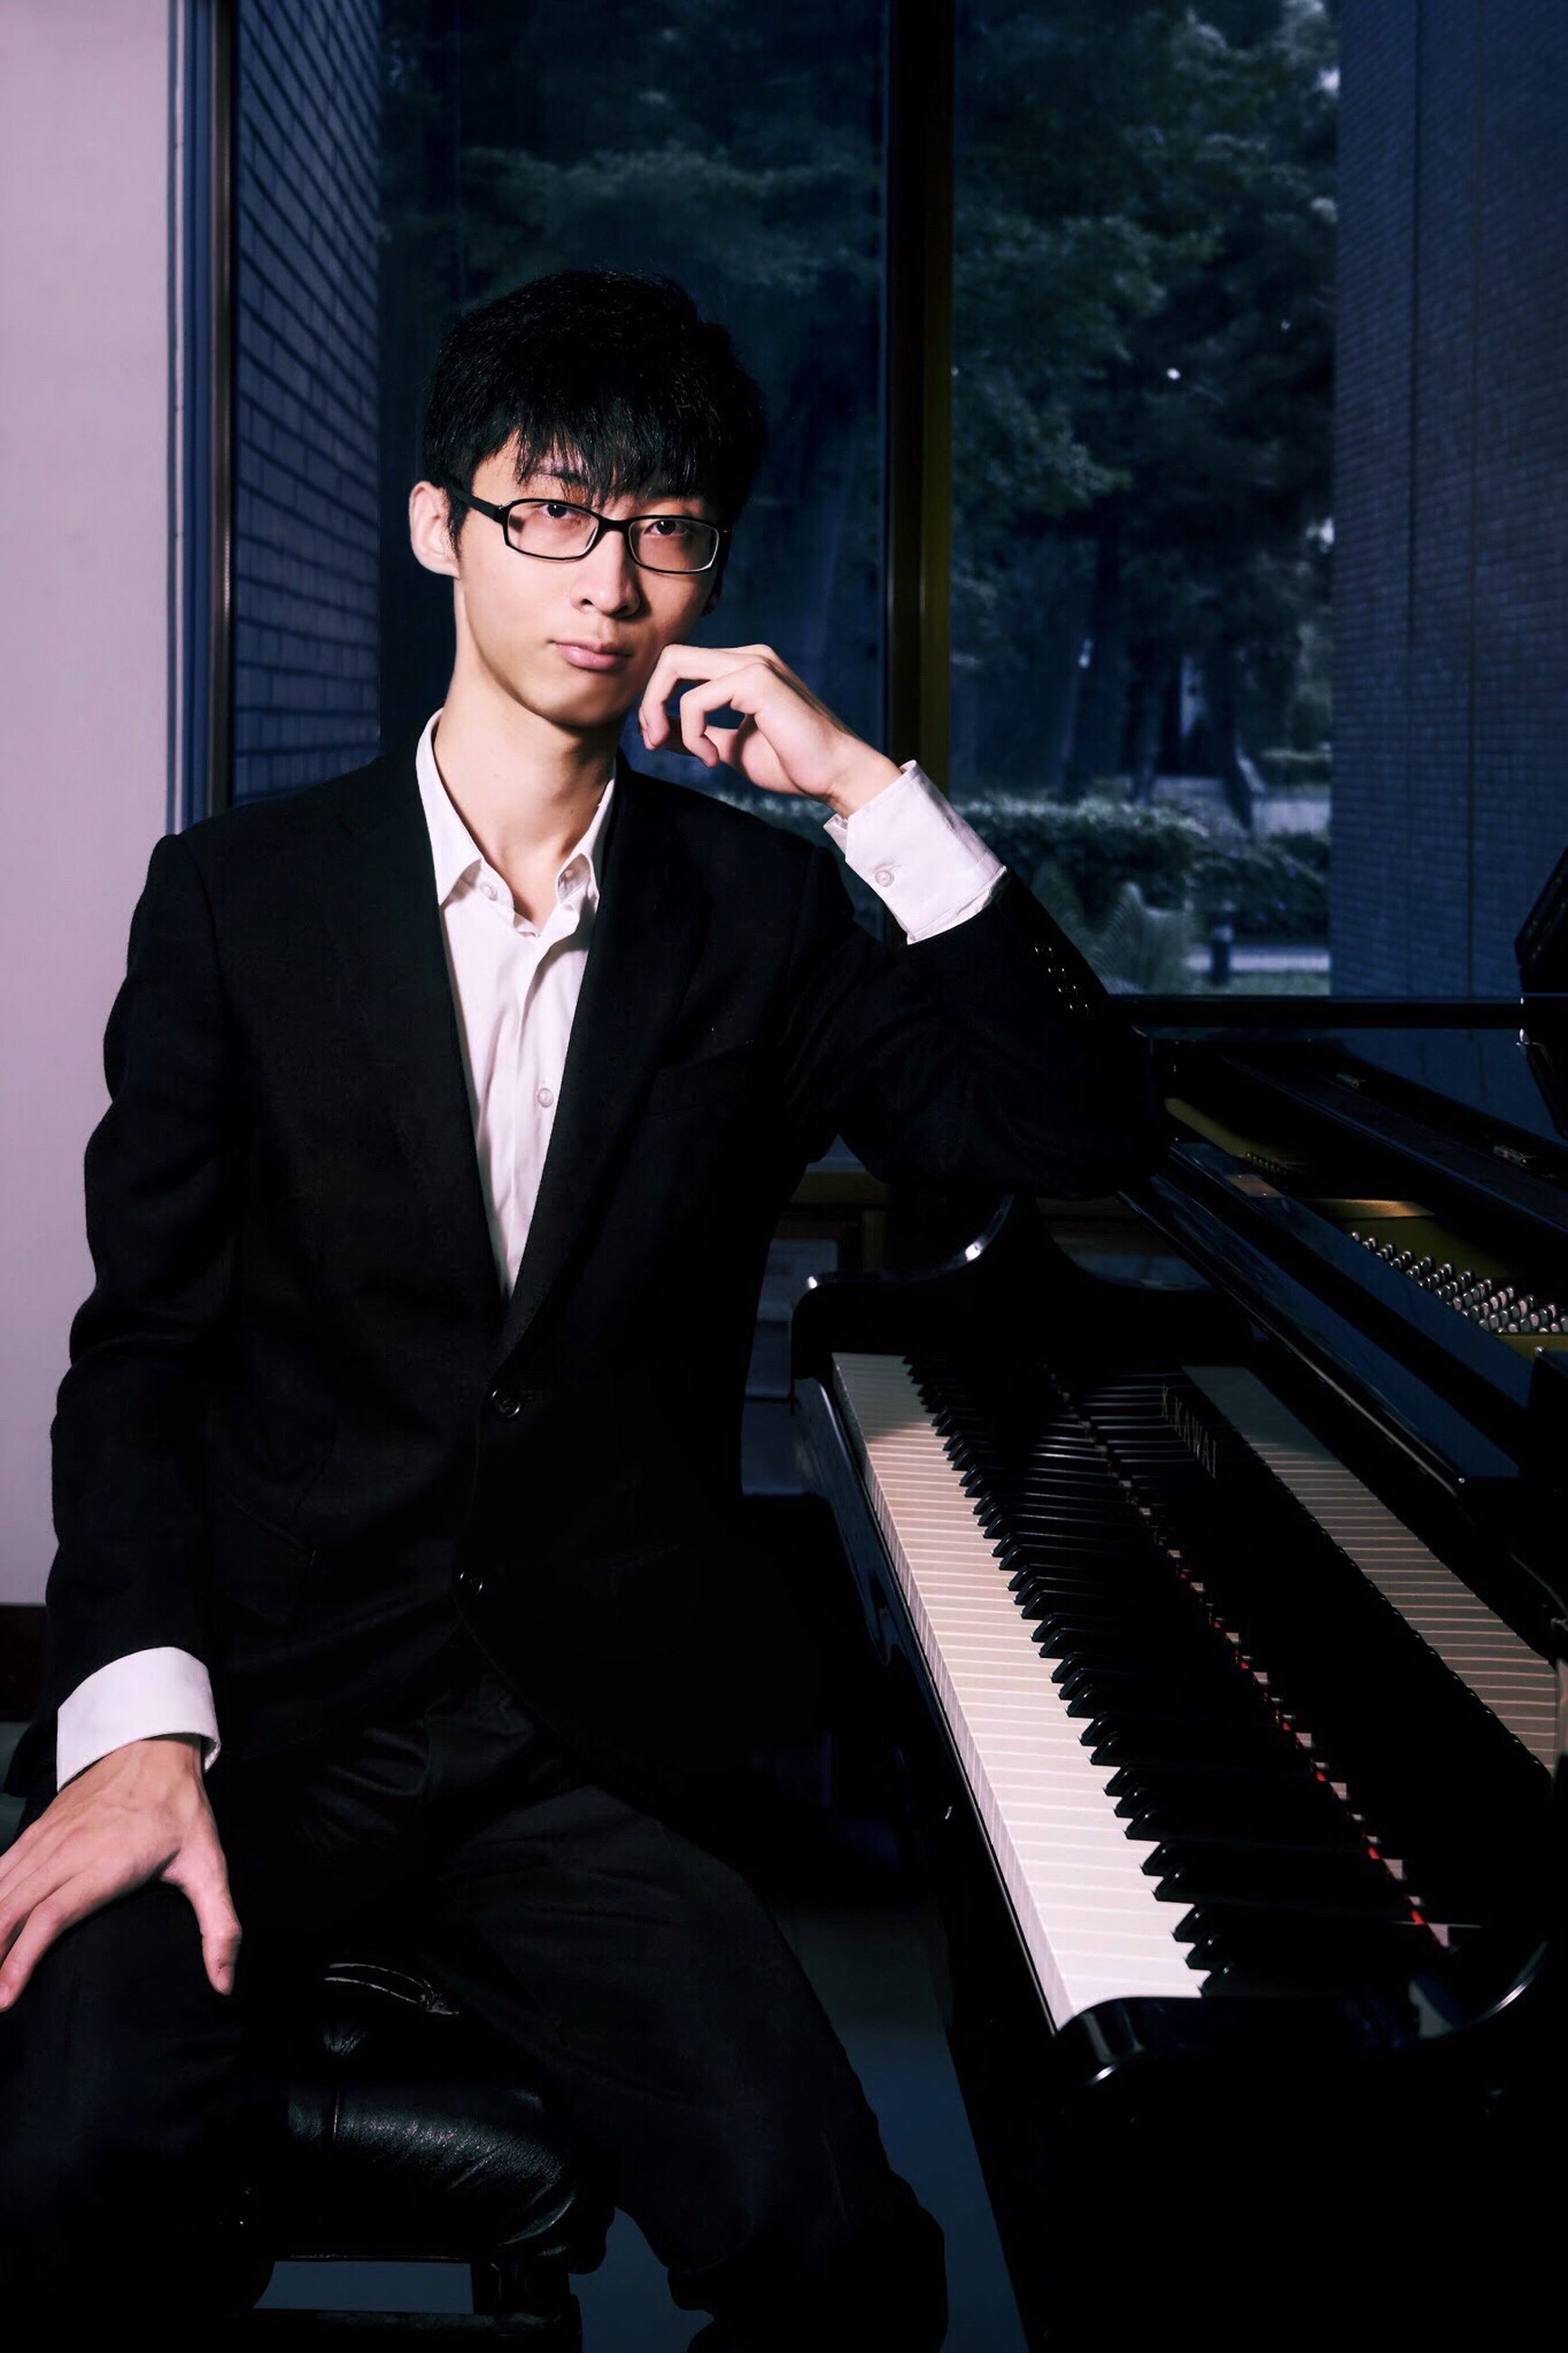 music, piano, musical instrument, one person, piano key, real people, pianist, playing, lifestyles, young adult, well-dressed, musician, sitting, suit, skill, men, indoors, day, people